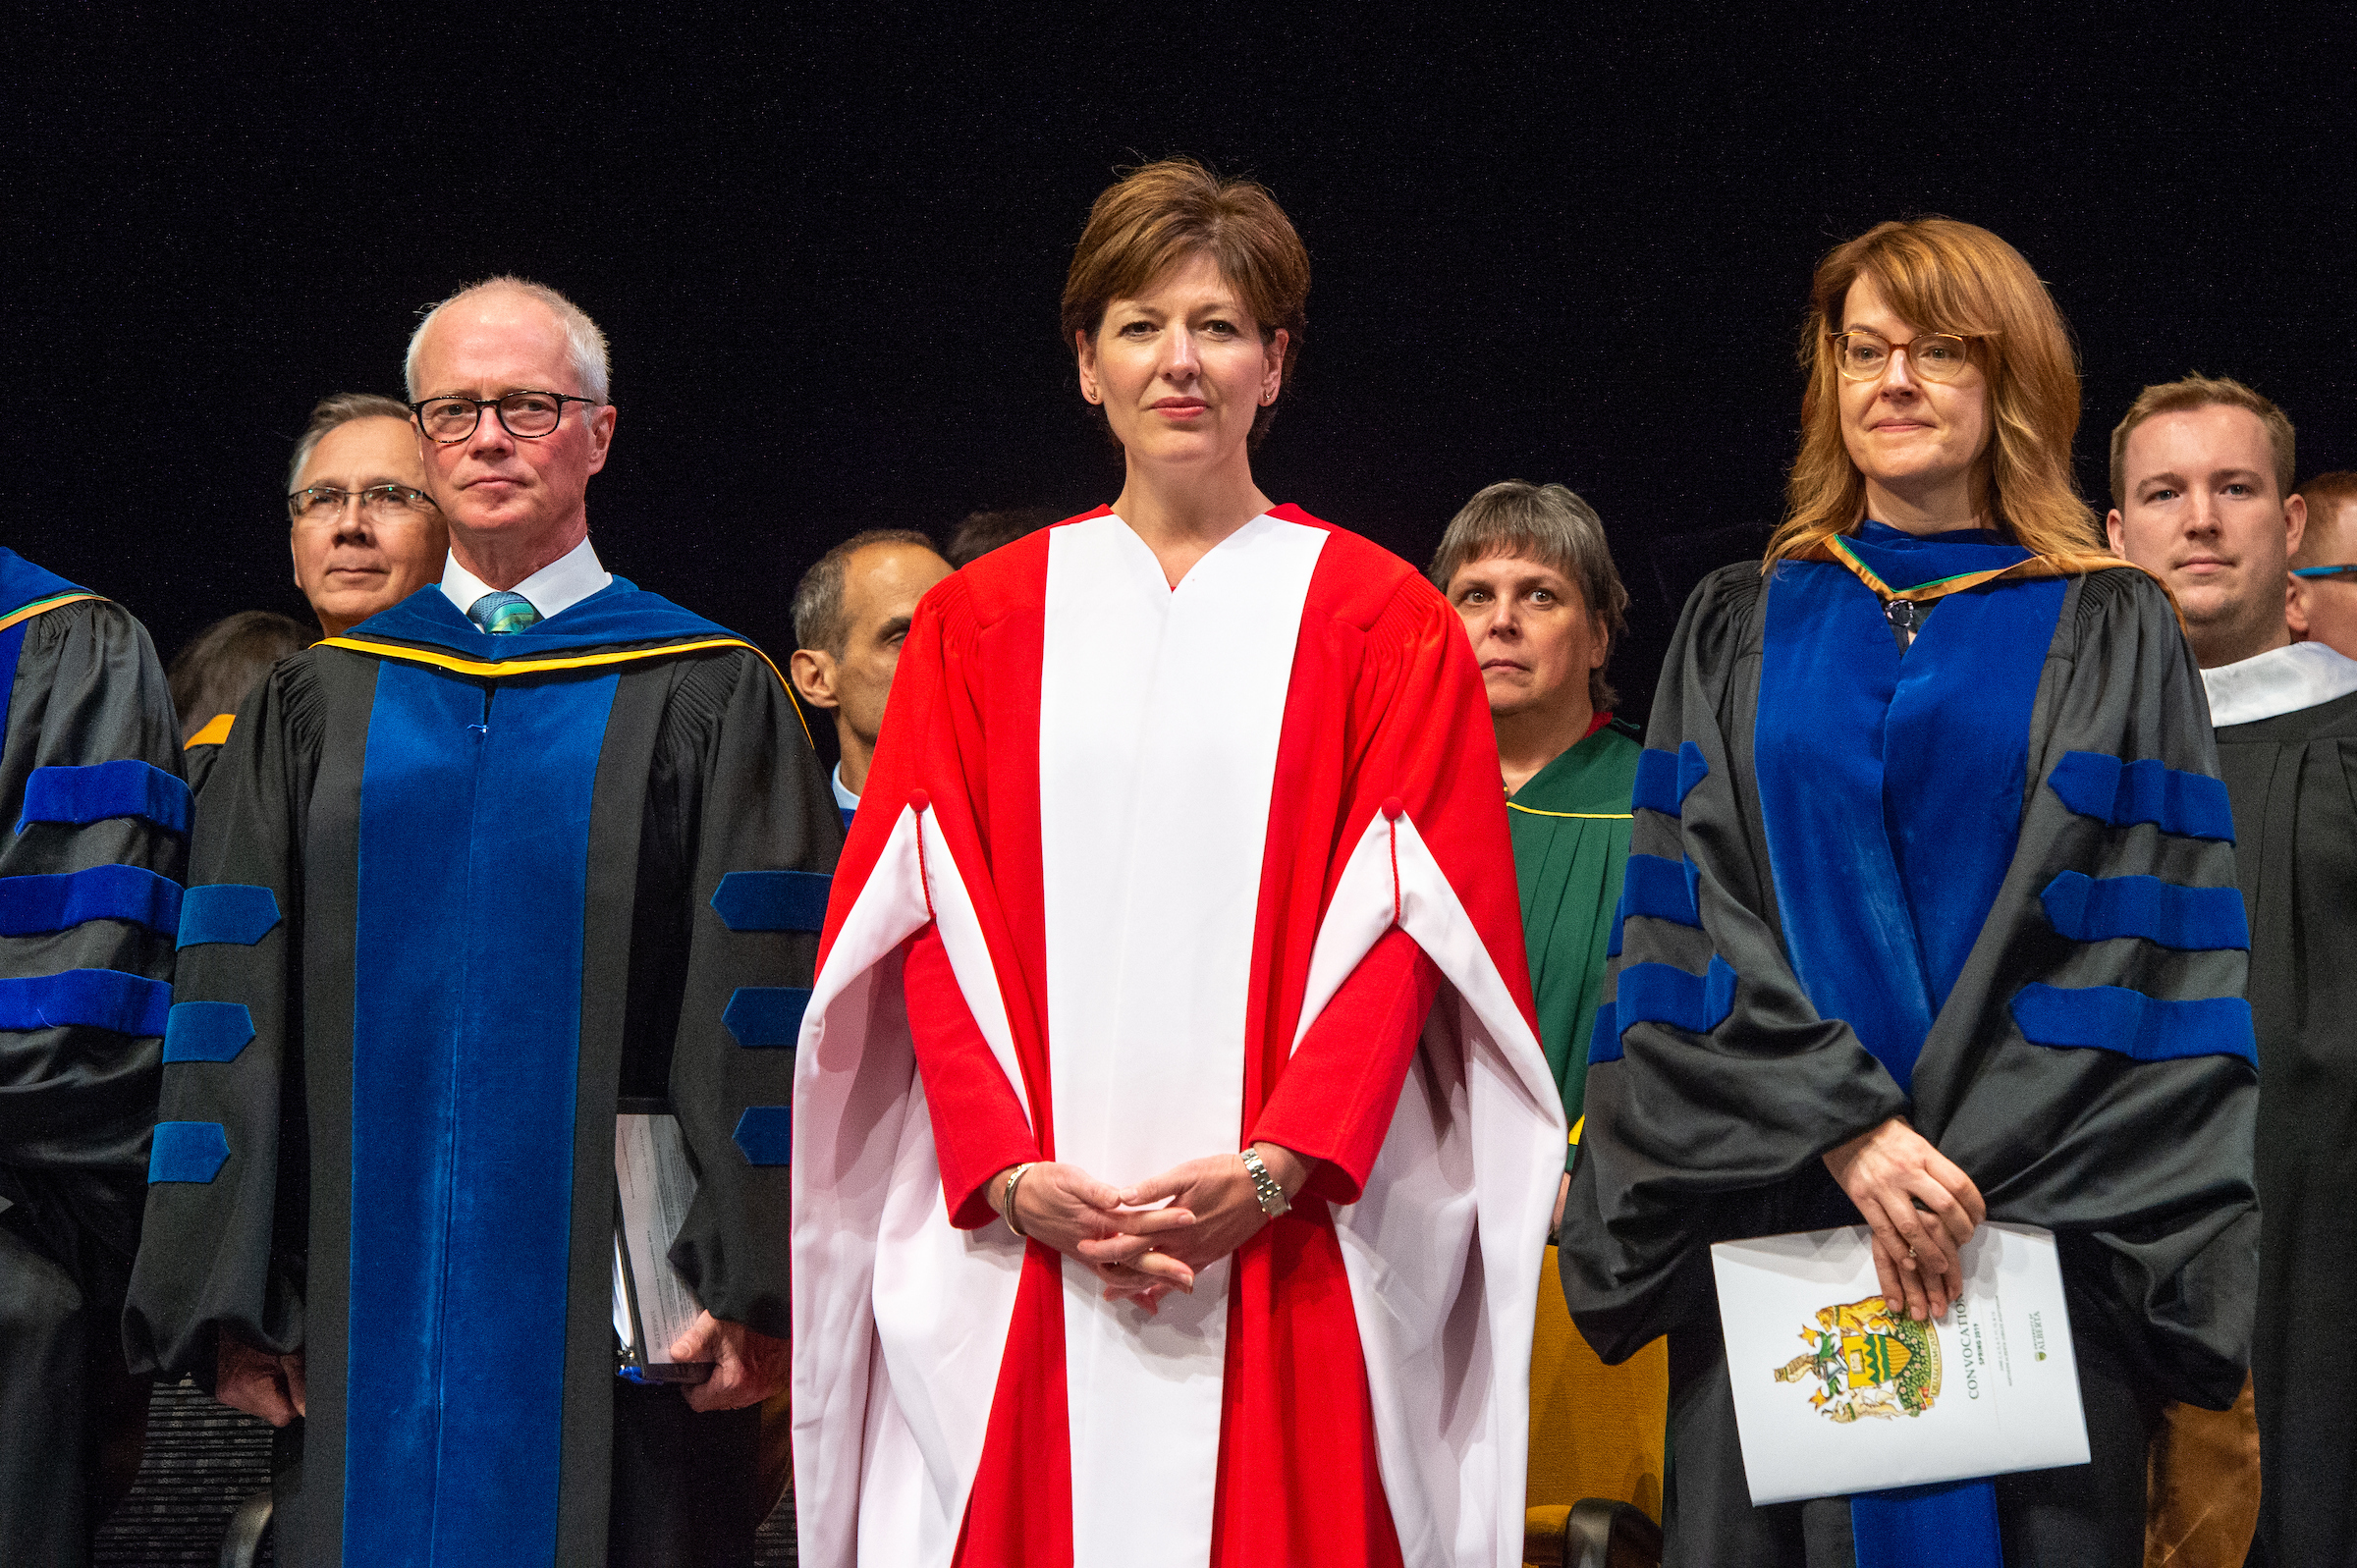 Caroline Jenner, honorary doctor of laws